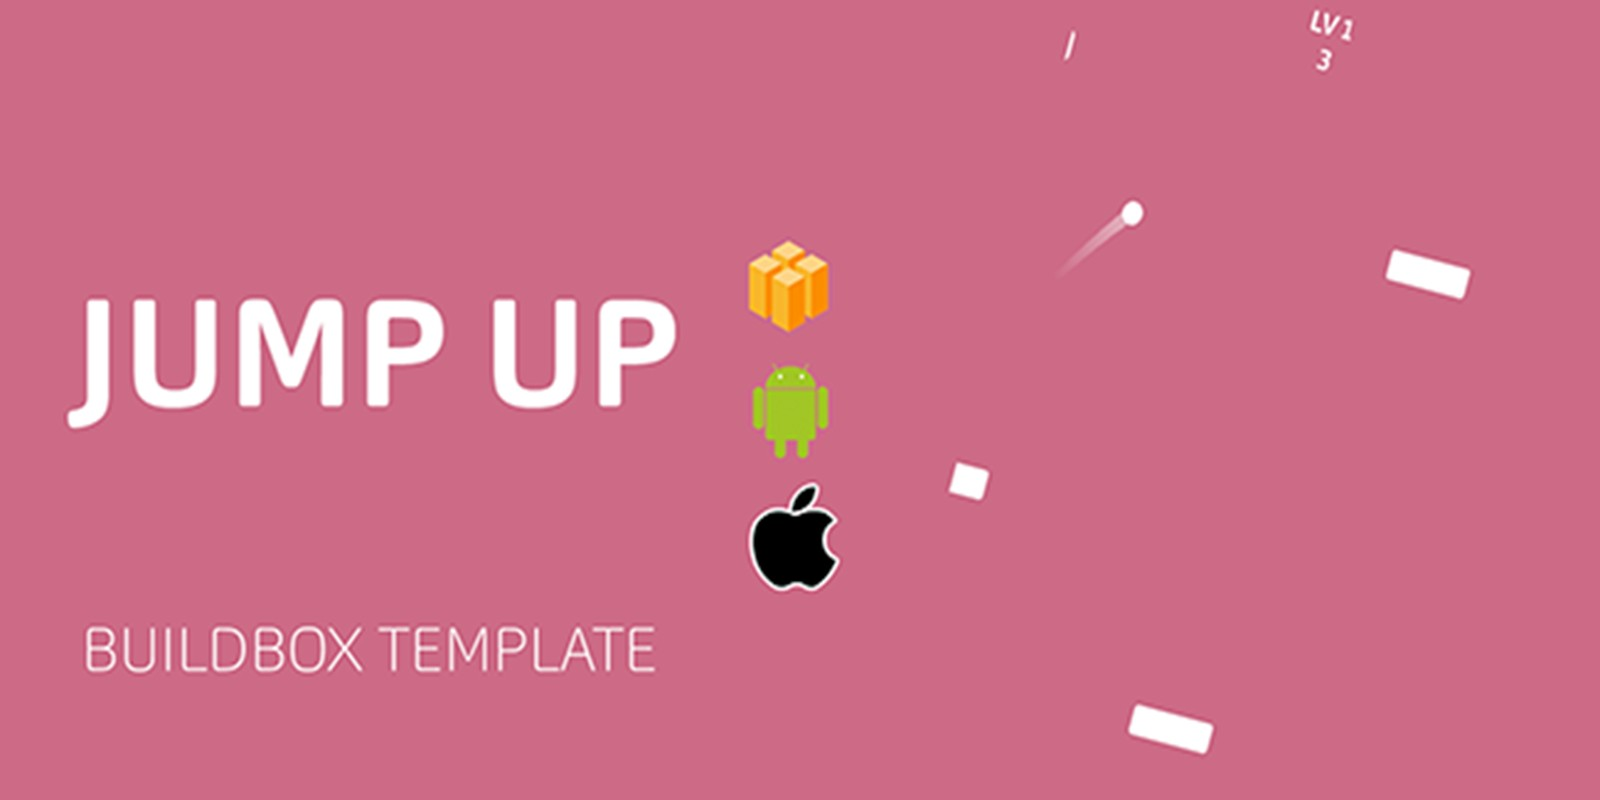 Jump Up Buildbox Template